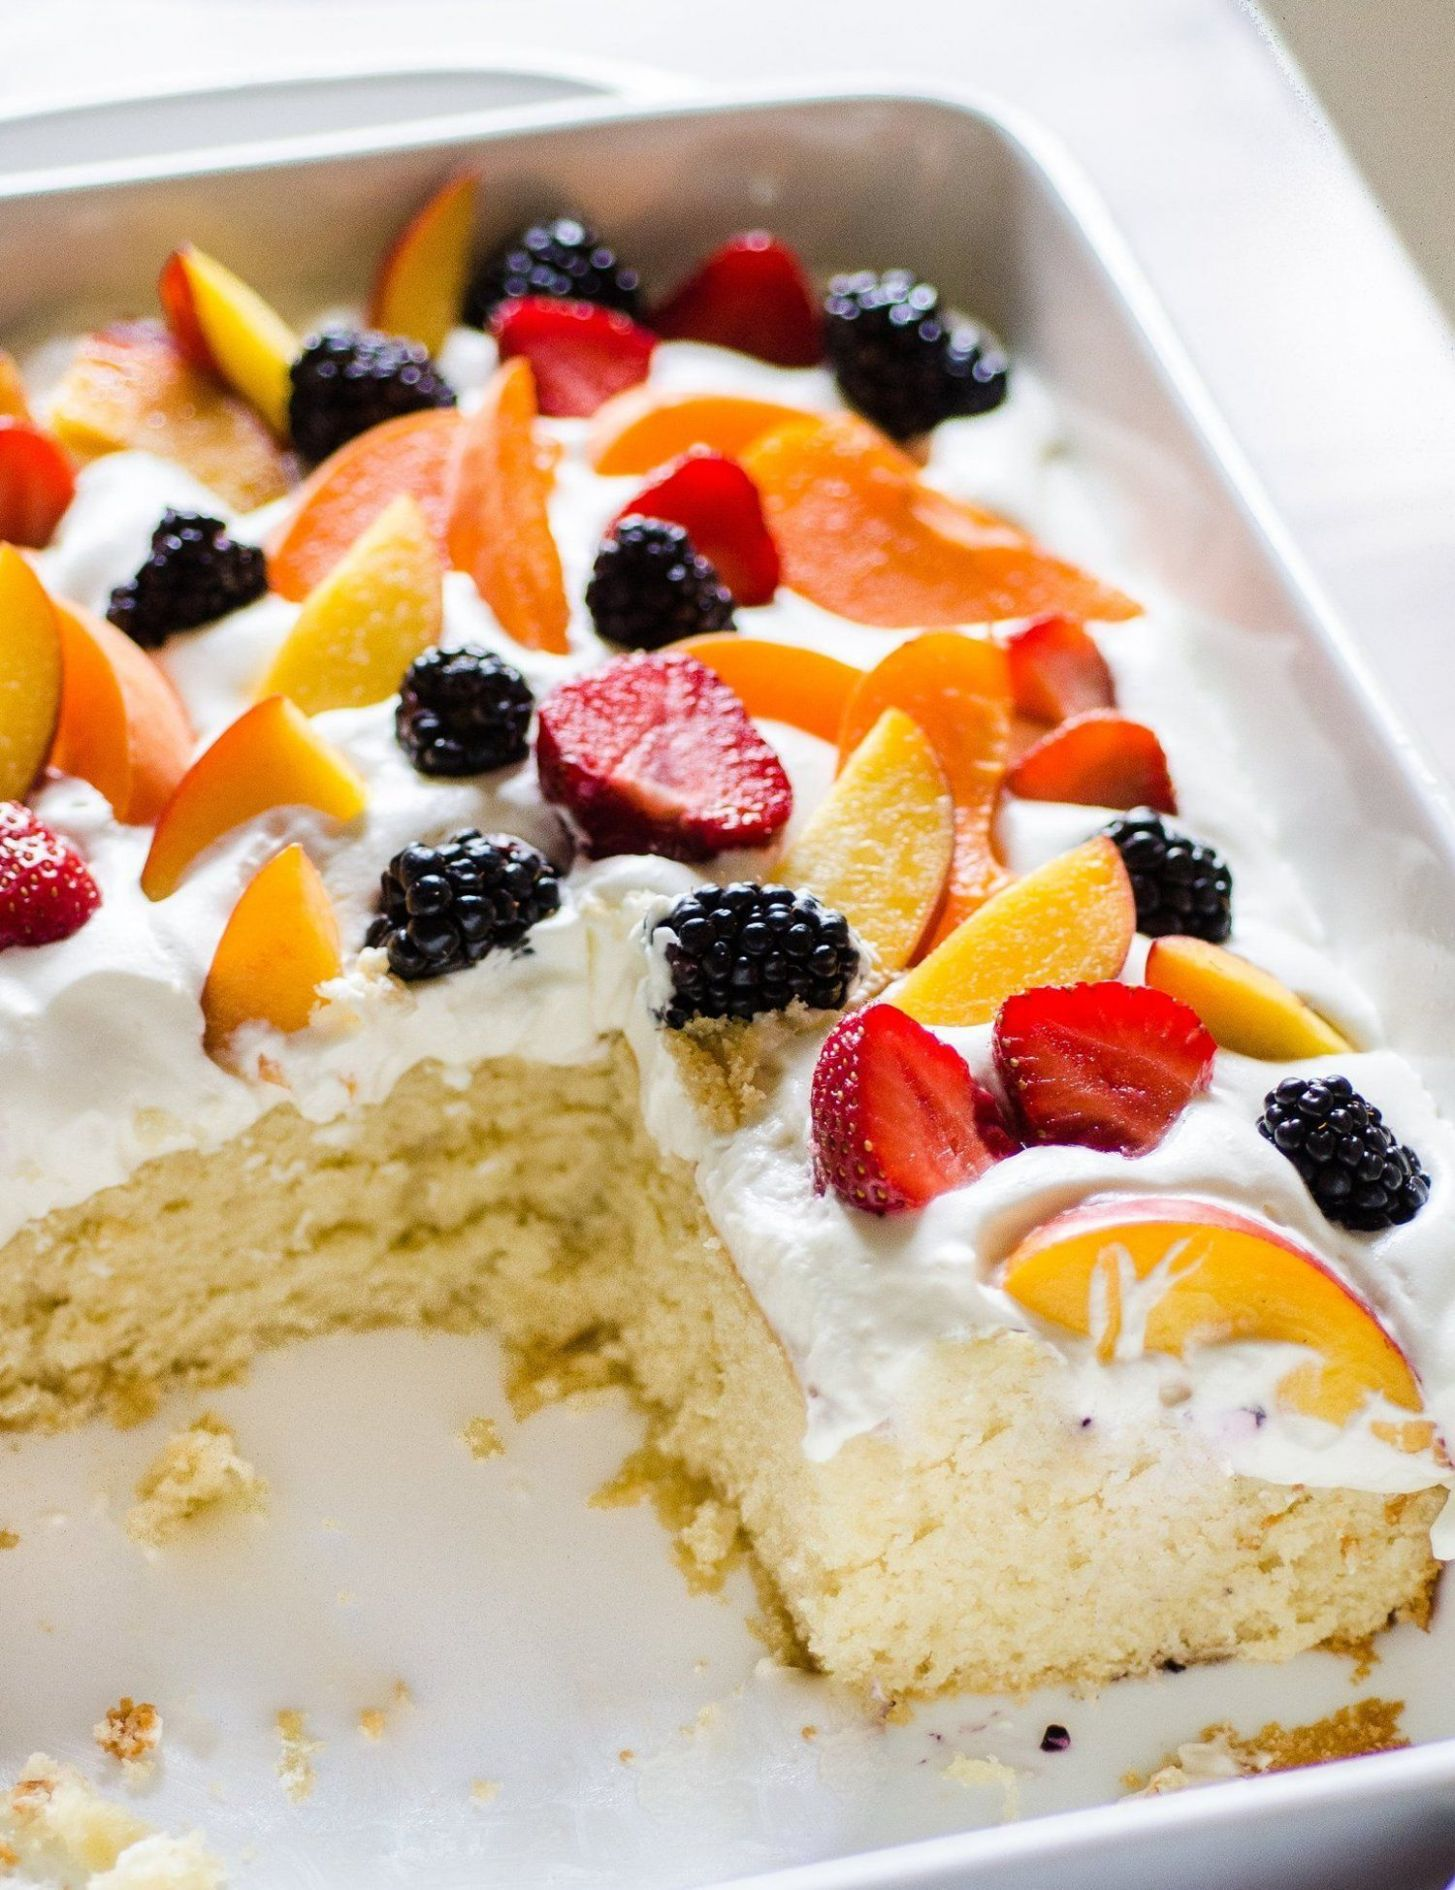 Easy Summer Cake with Fruit & Cream - Recipes Easy Summer Desserts